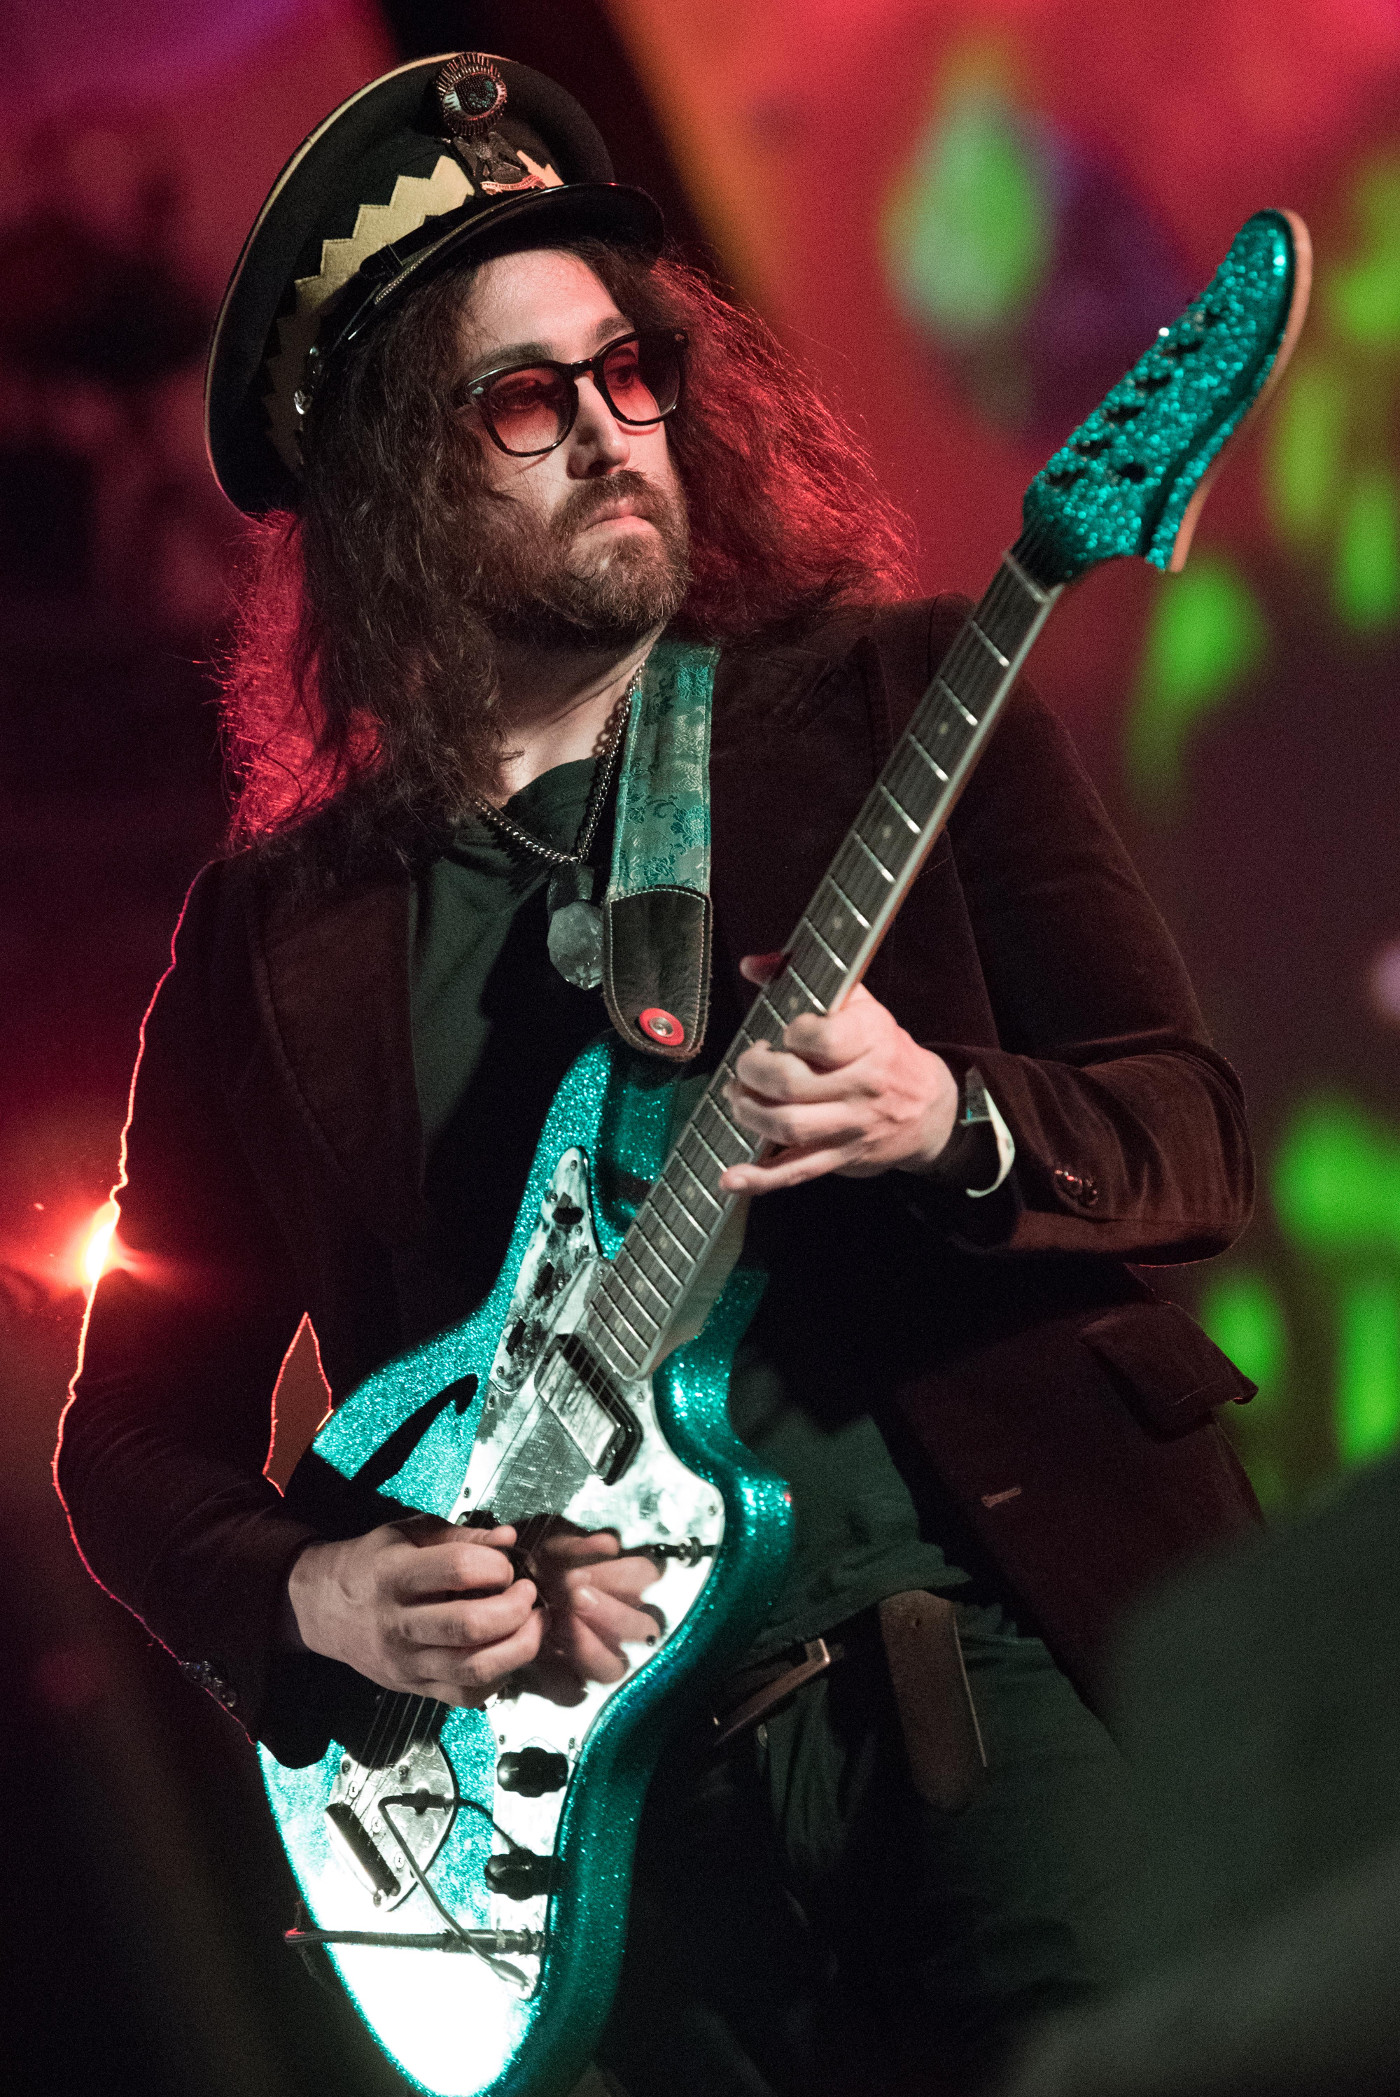 images/Desert Daze 2019/Sean Lennon of the Claypool Lennon Delirium DSC_8859